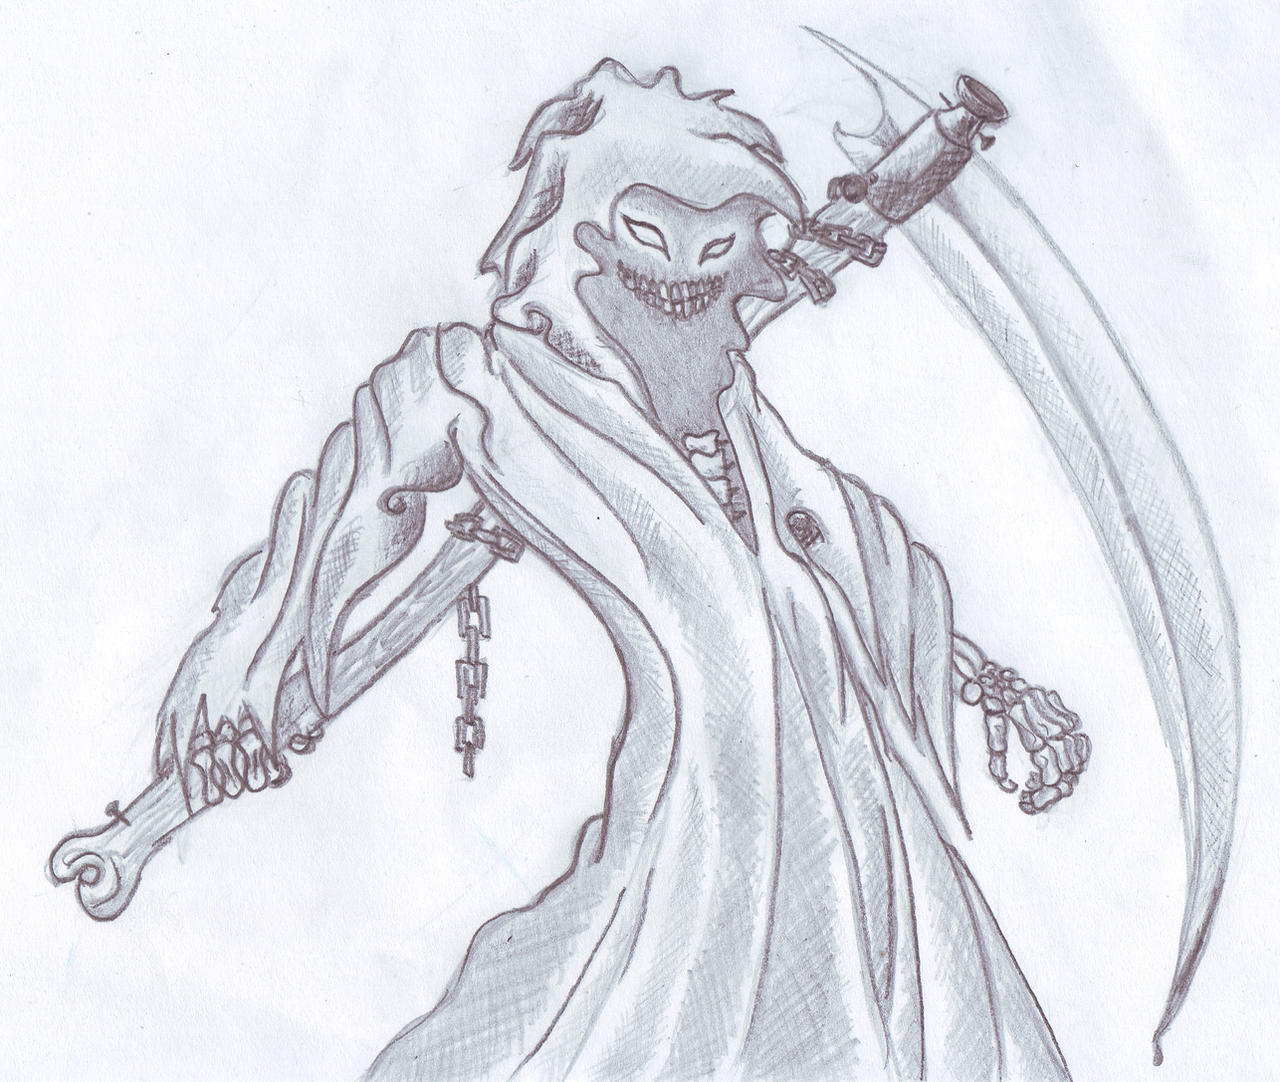 Disturbed reaper by kempogirl007 on DeviantArt